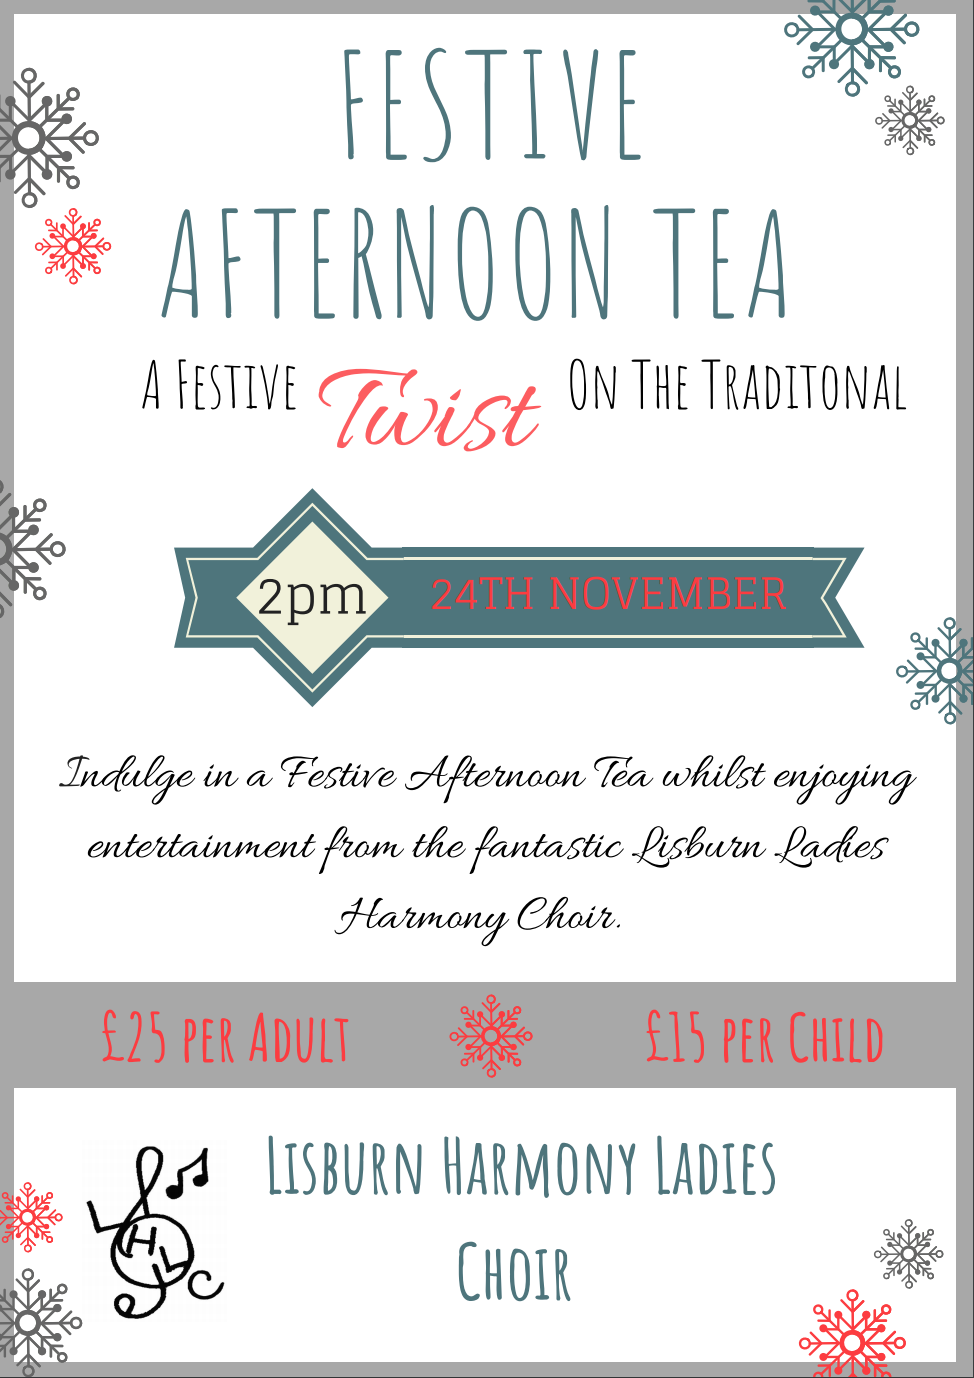 Festive Afternoon Tea at Edenmore Golf Club